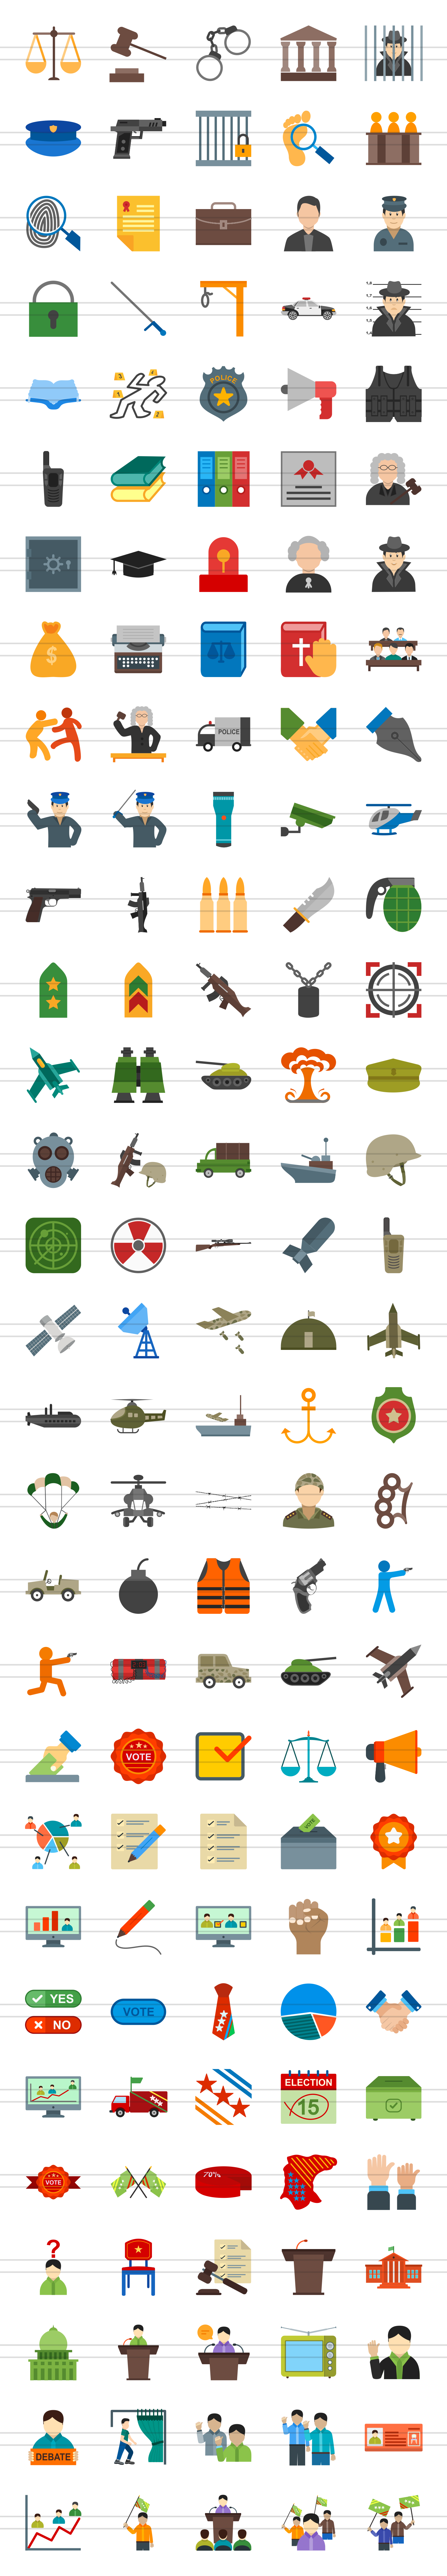 150 Law & Order Flat Icons example image 3